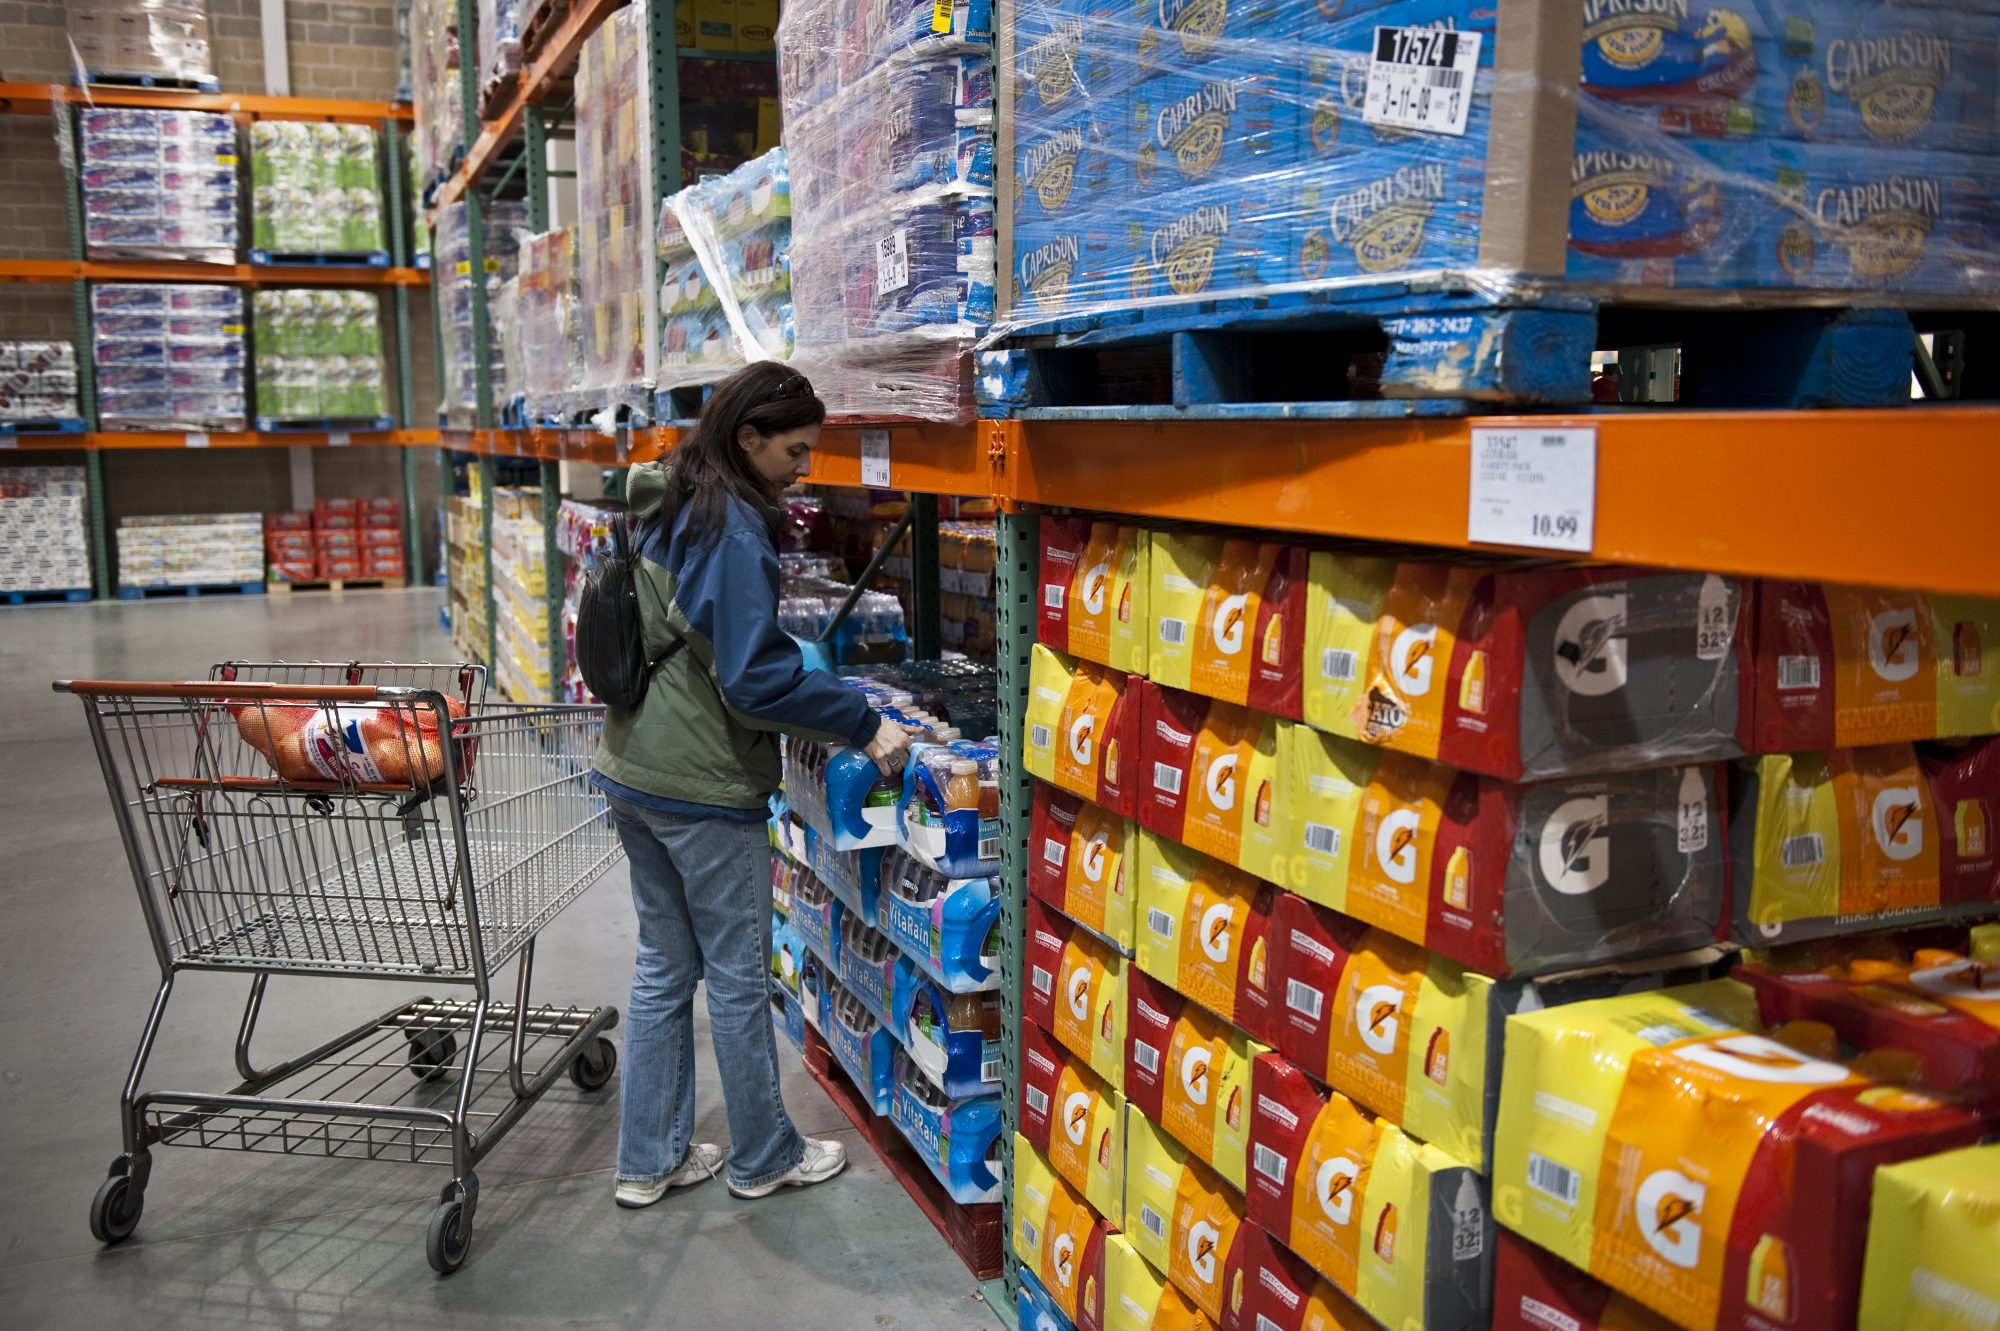 getty costco drinks image